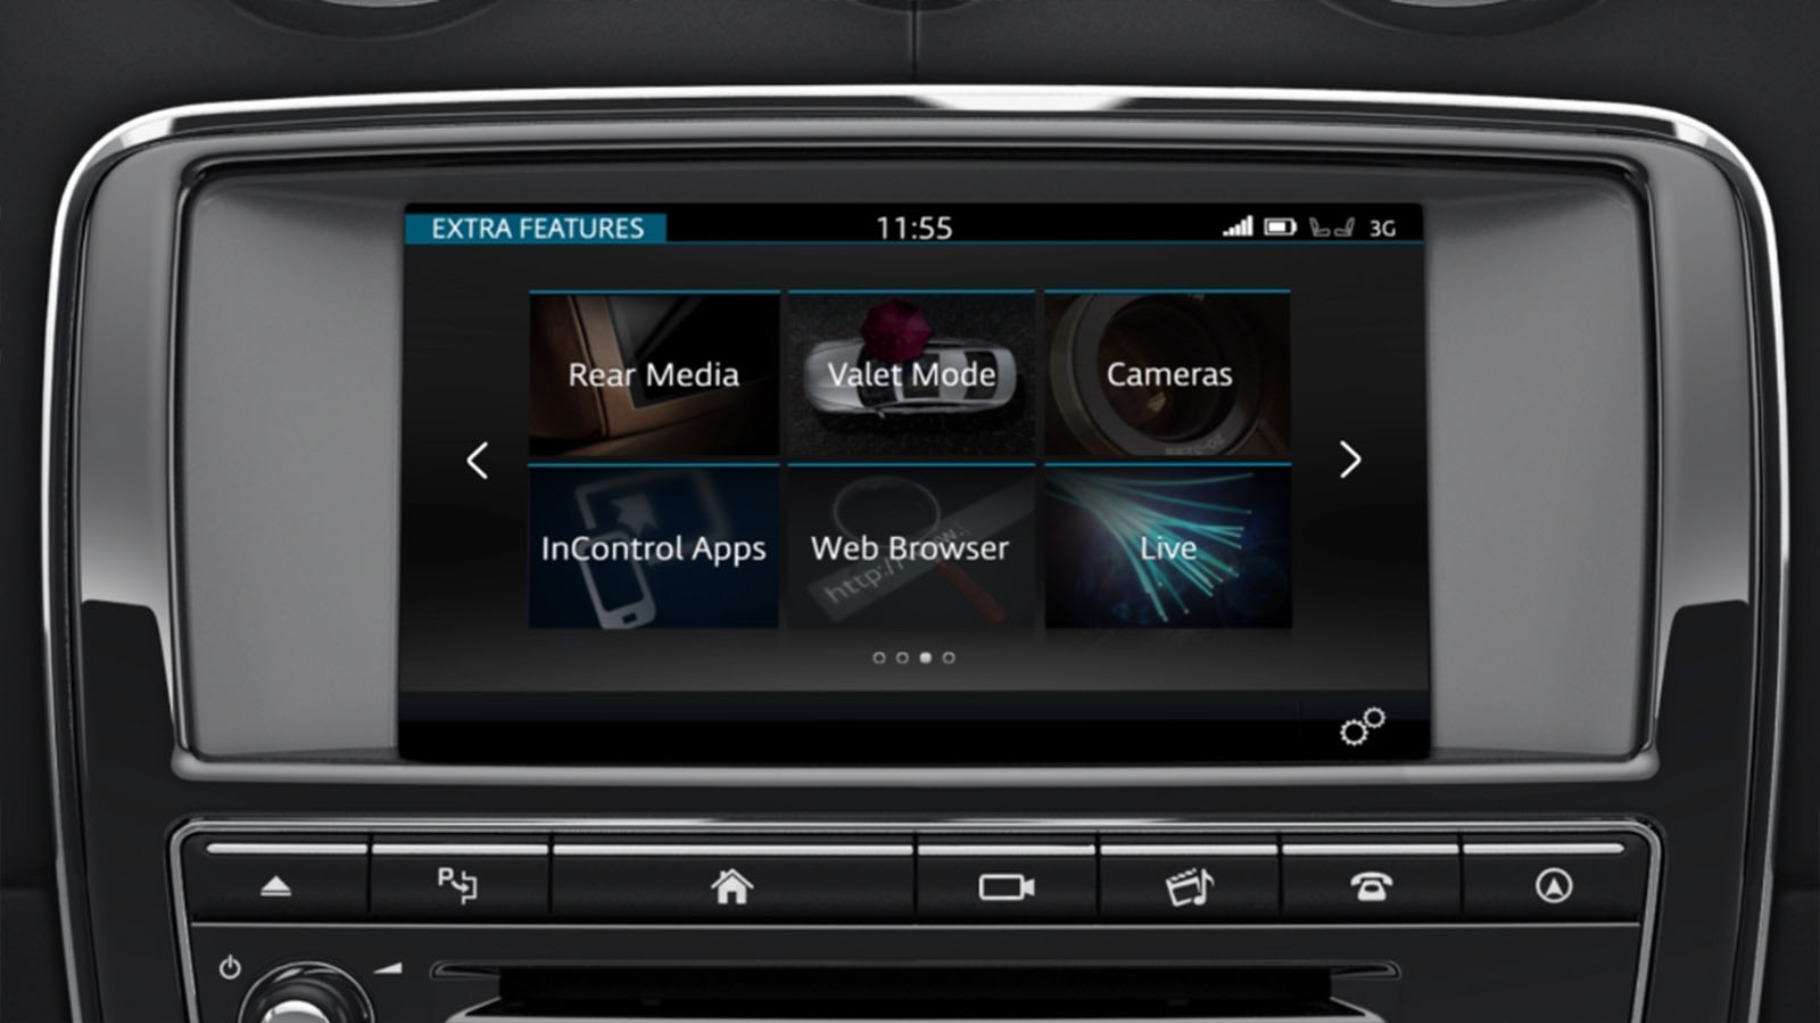 Jaguar XJ's InControl Touch Pro: Extra Features information video.